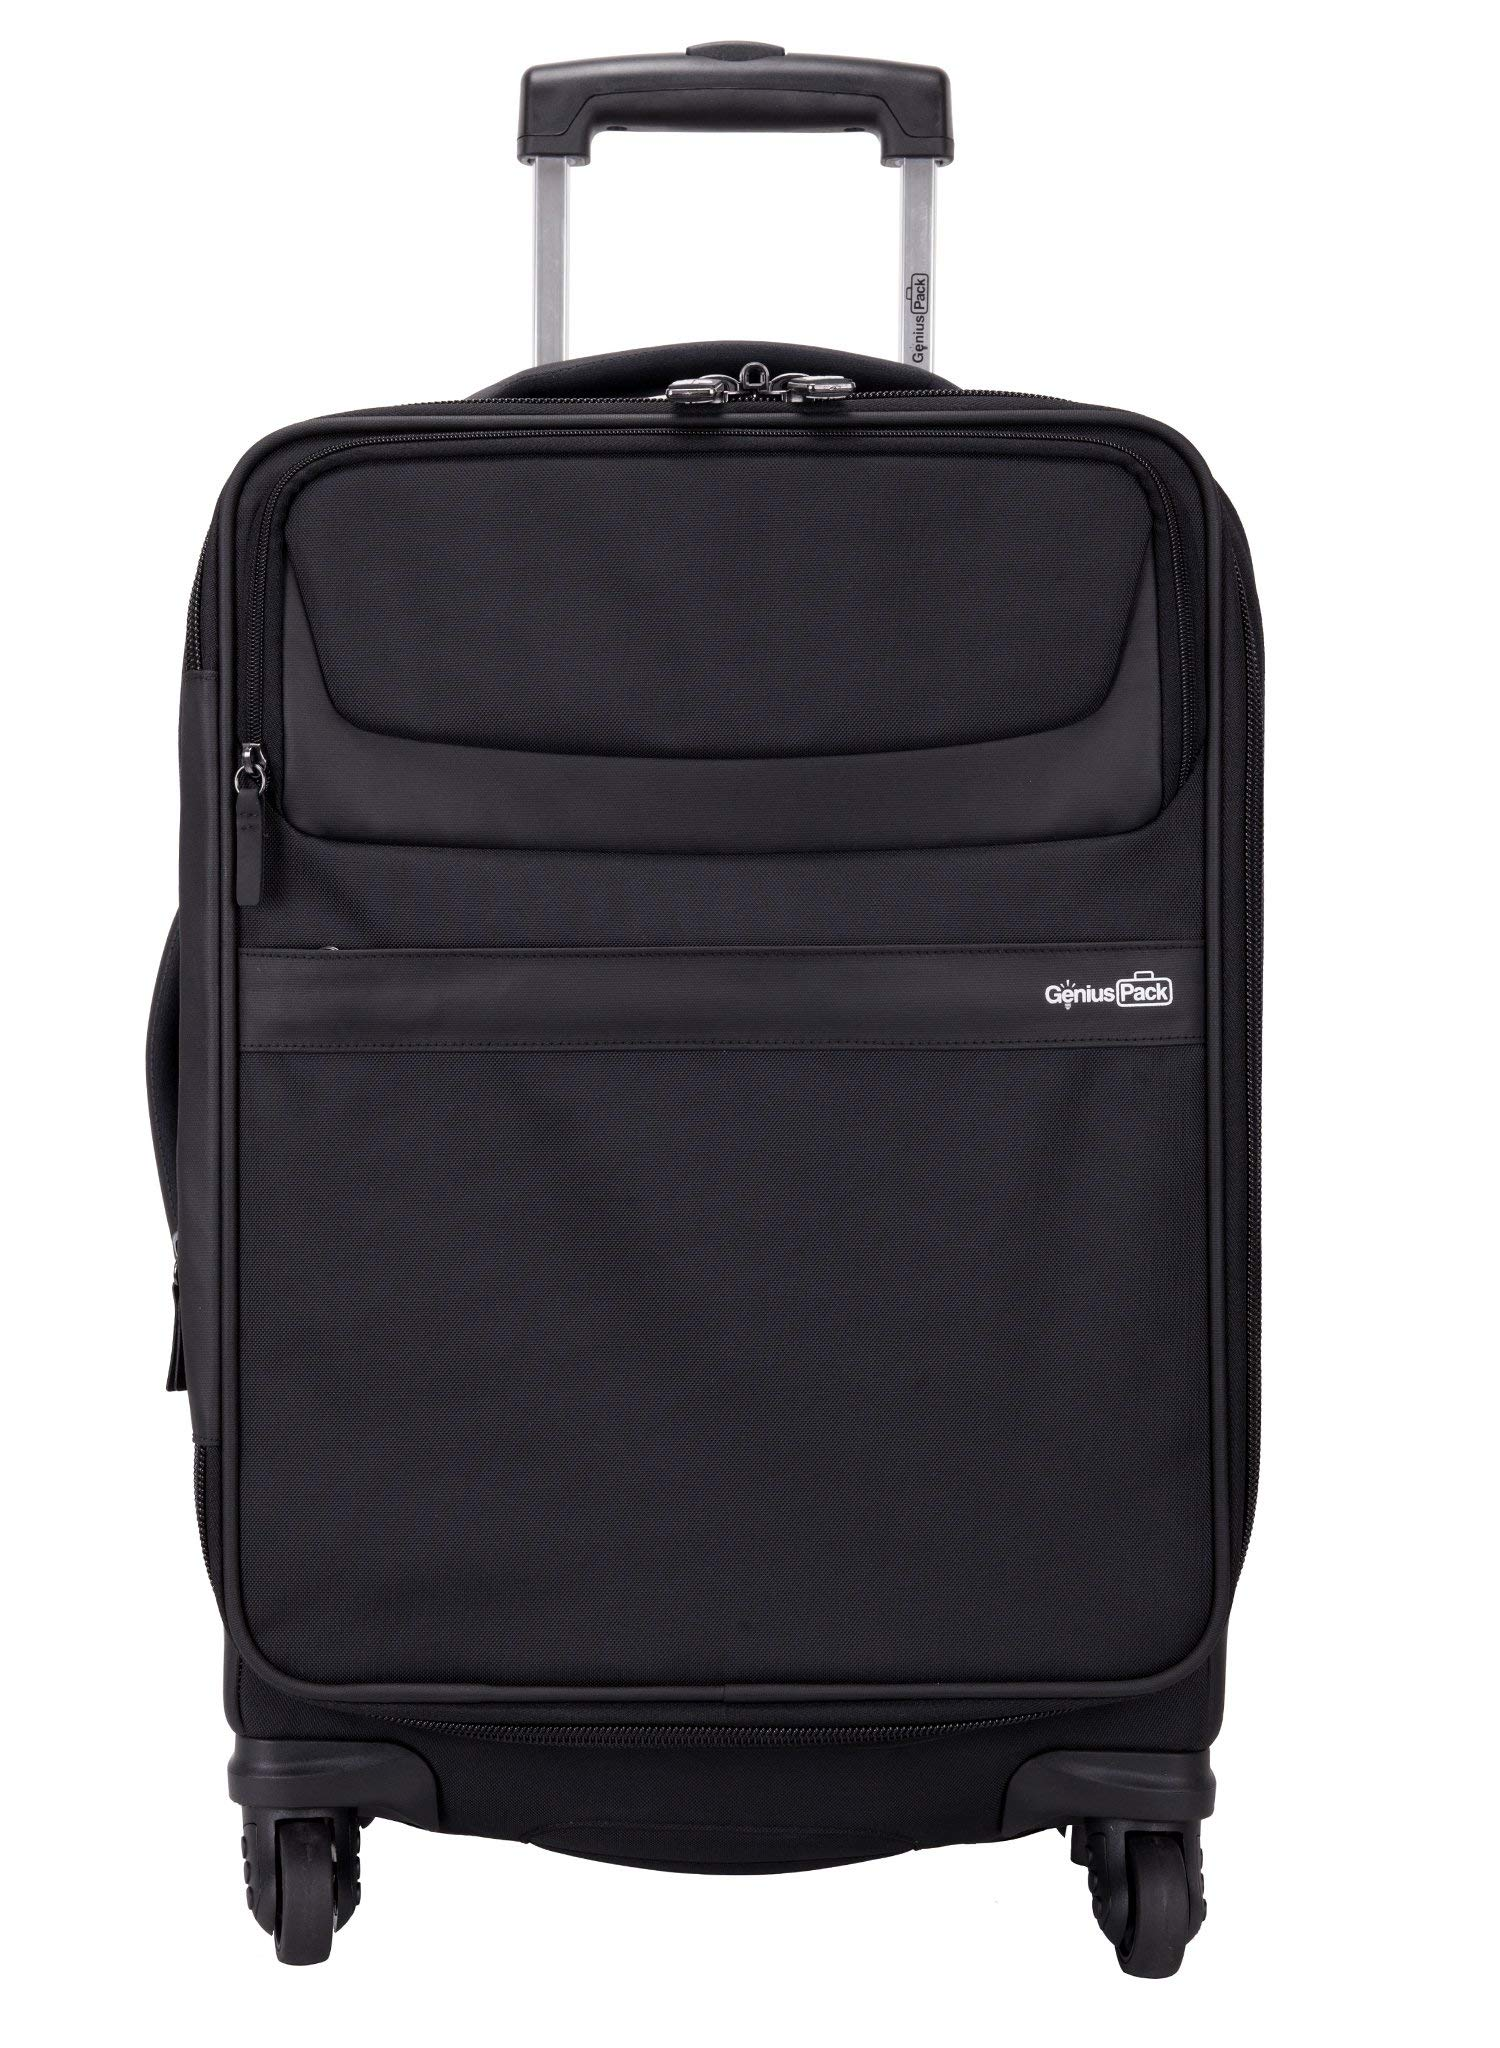 Genius Pack G4 22'' Carry On Spinner Luggage - Smart, Organized, Lightweight Suitcase (G4 - Black)